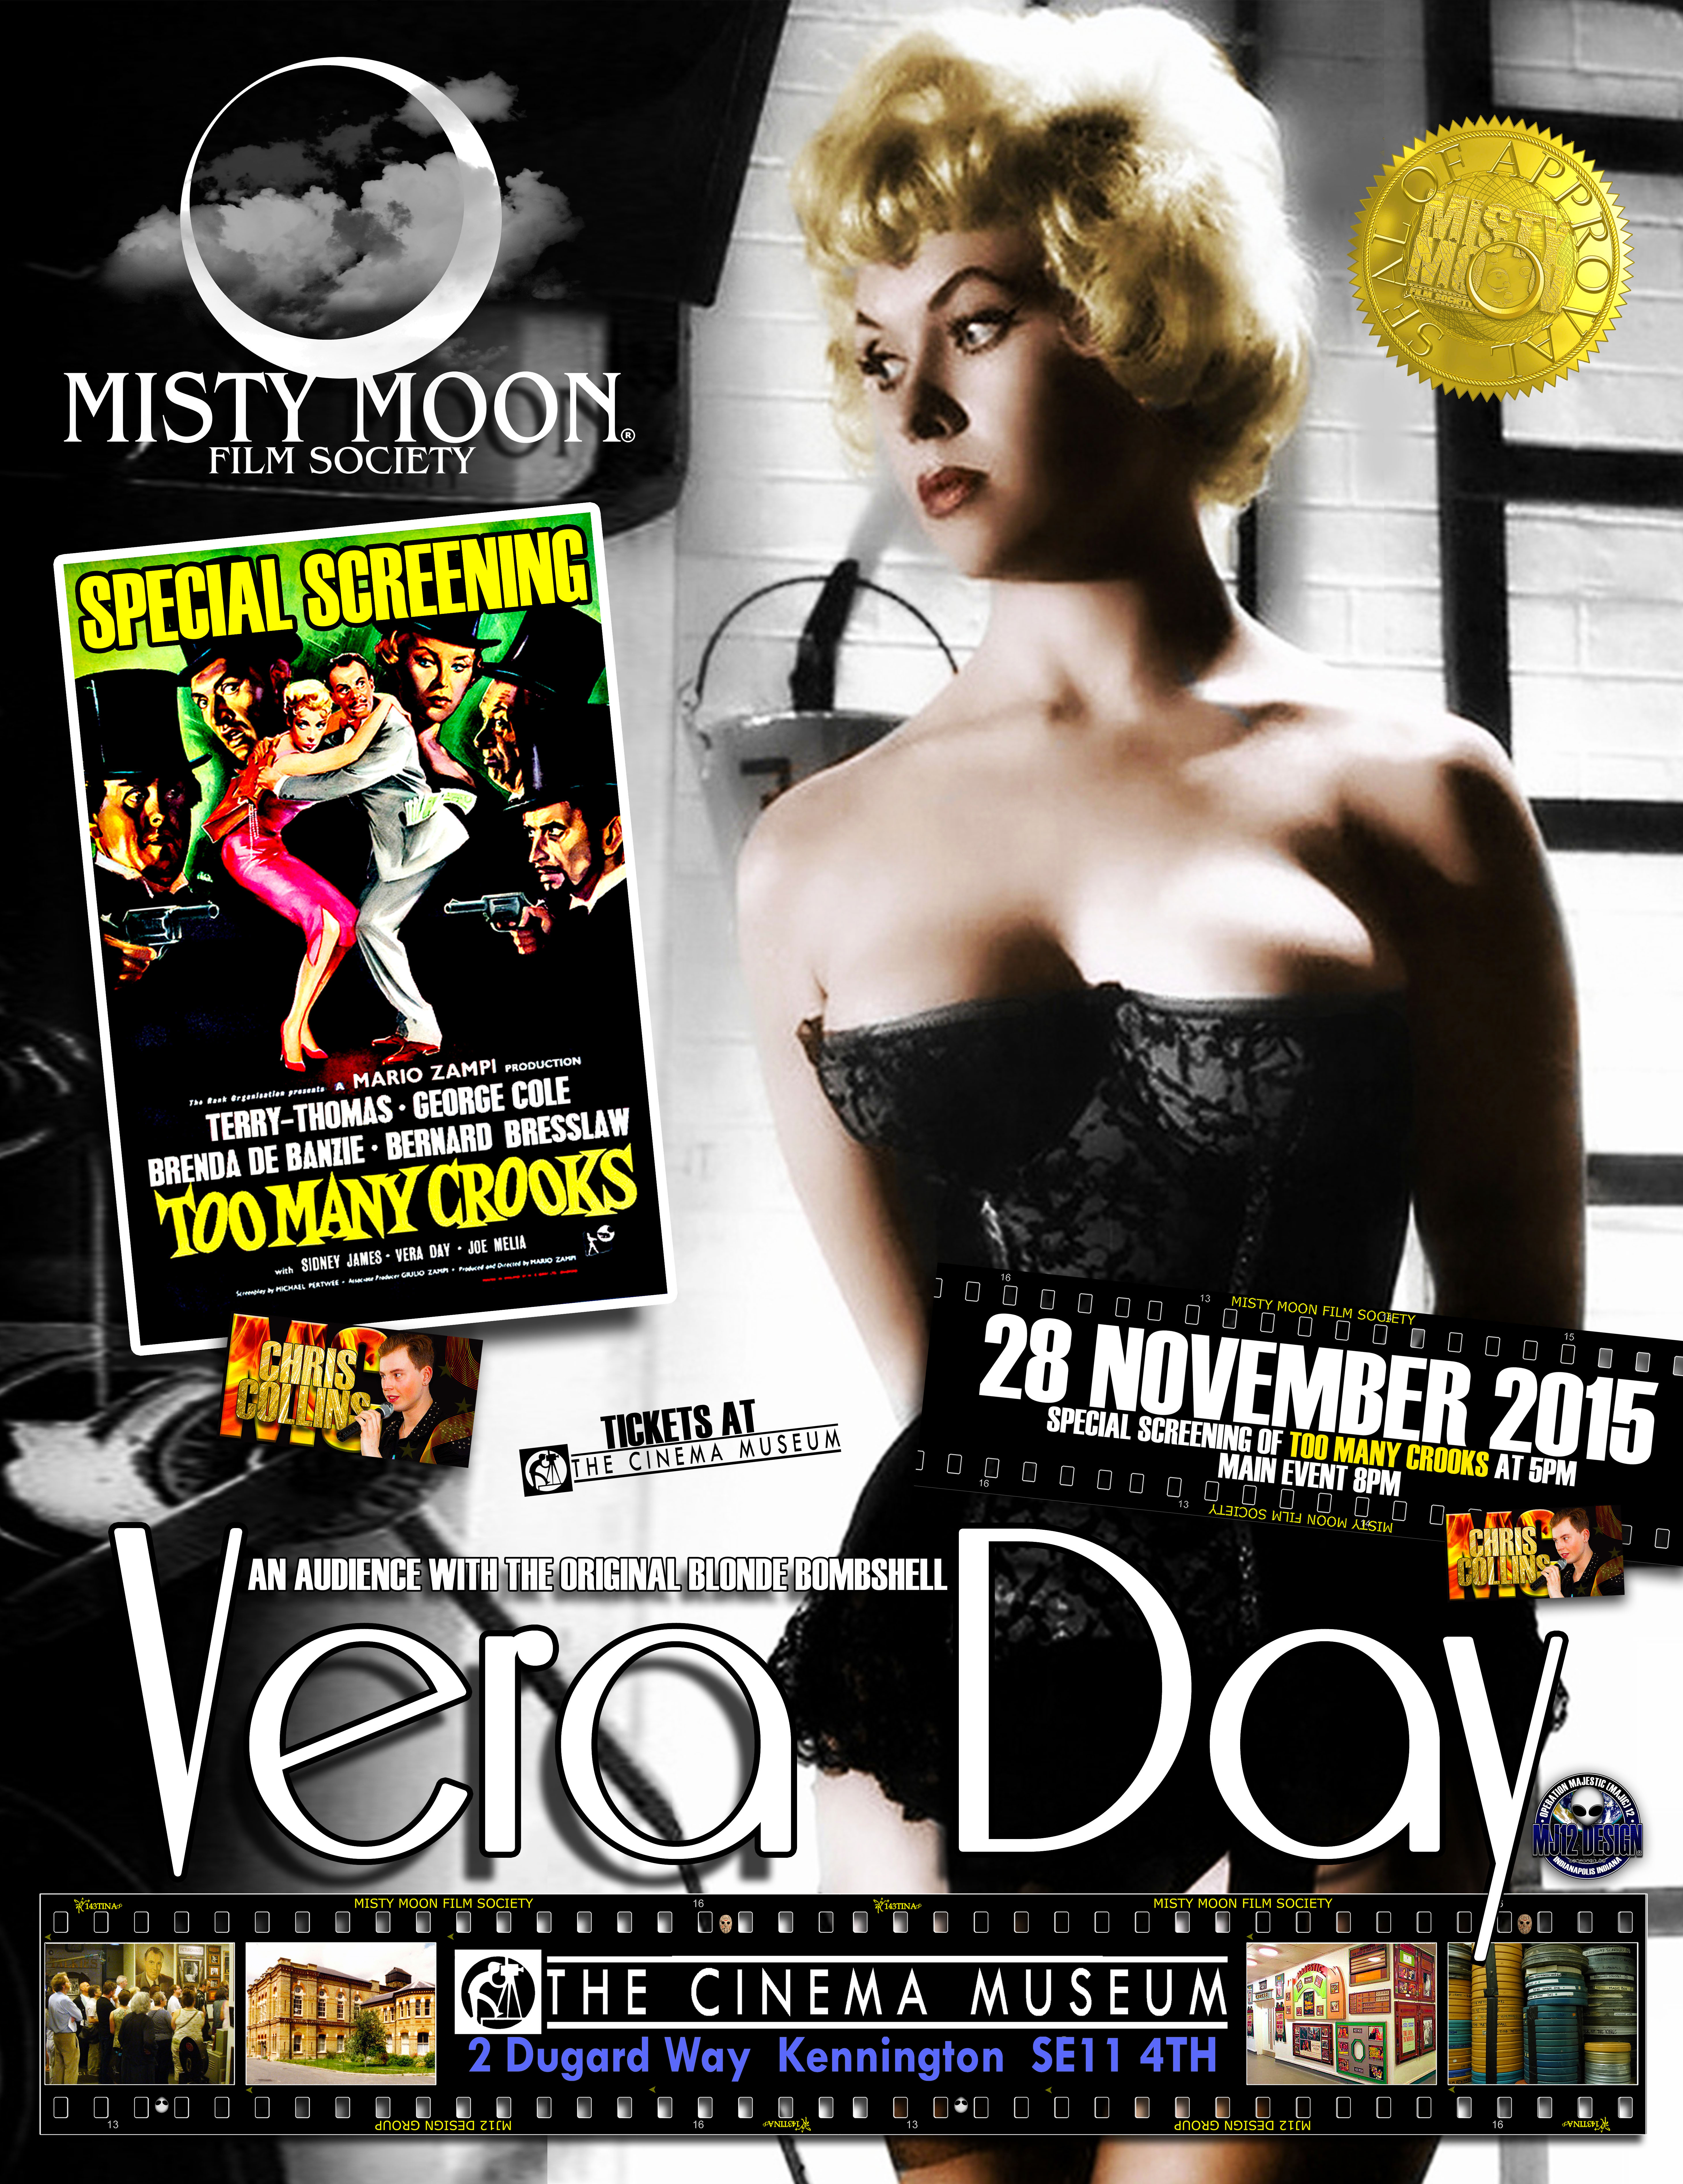 Tickets available in advance at https://billetto.co.uk/an-audience-with-vera-day